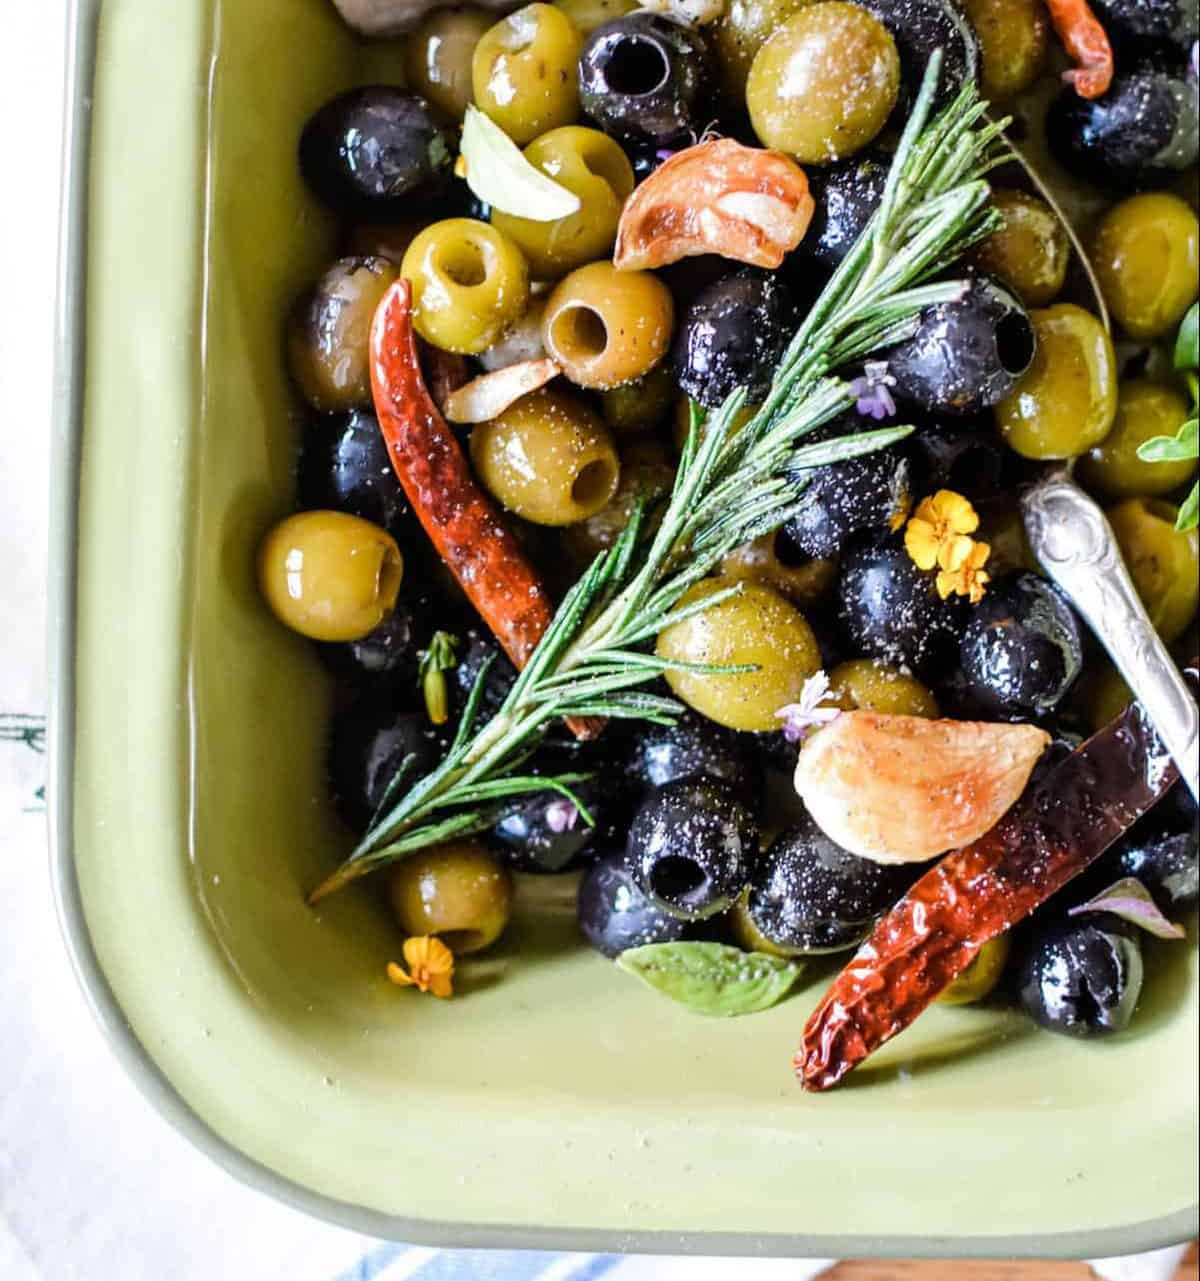 Spicy marinated olives with garlic and herbs